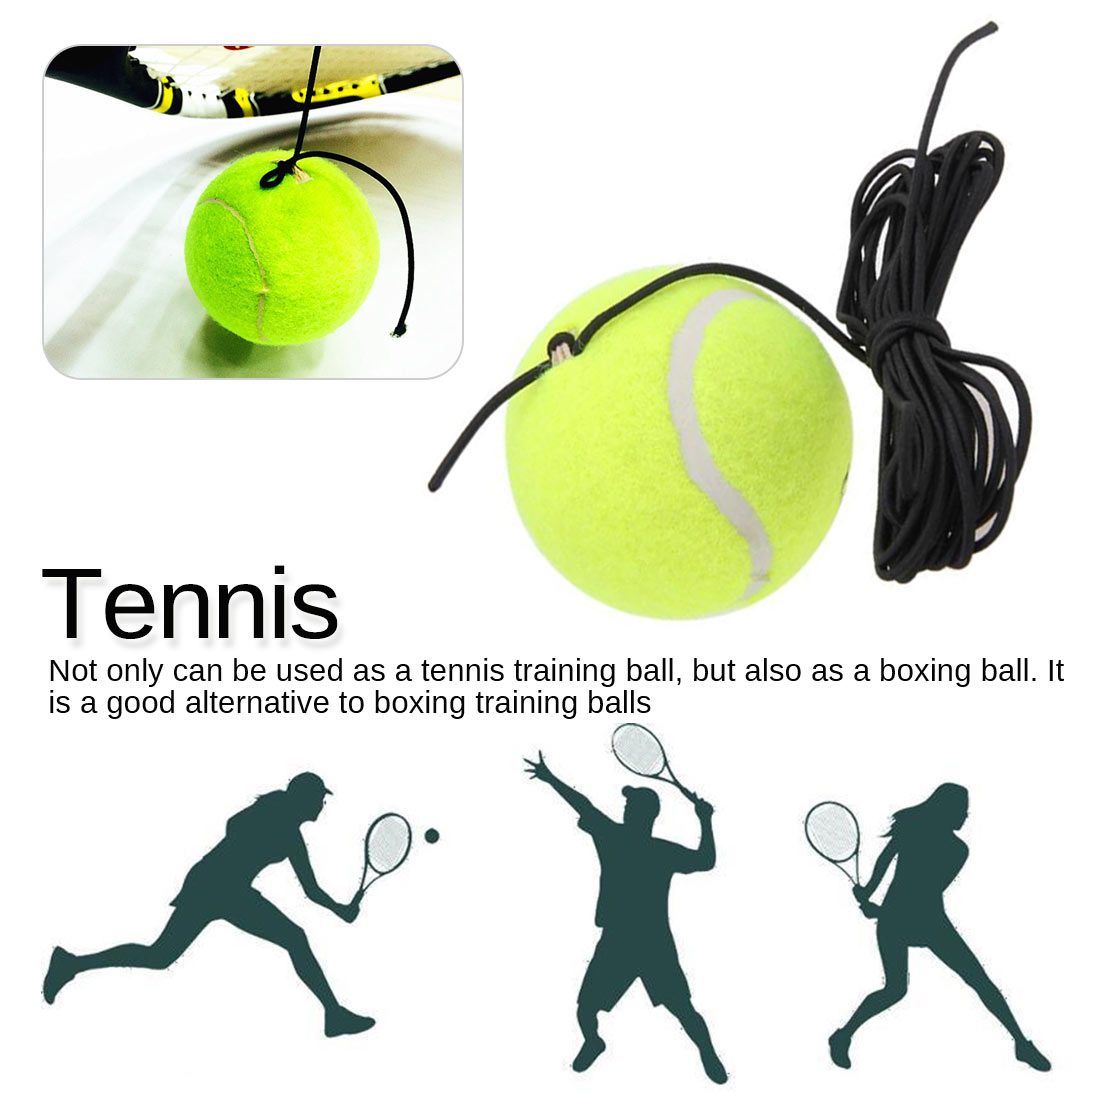 Tennis Trainer Training Primary Tool Exercise Tennis Ball Self-study Rebound Ball Tennis Trainer Baseboard